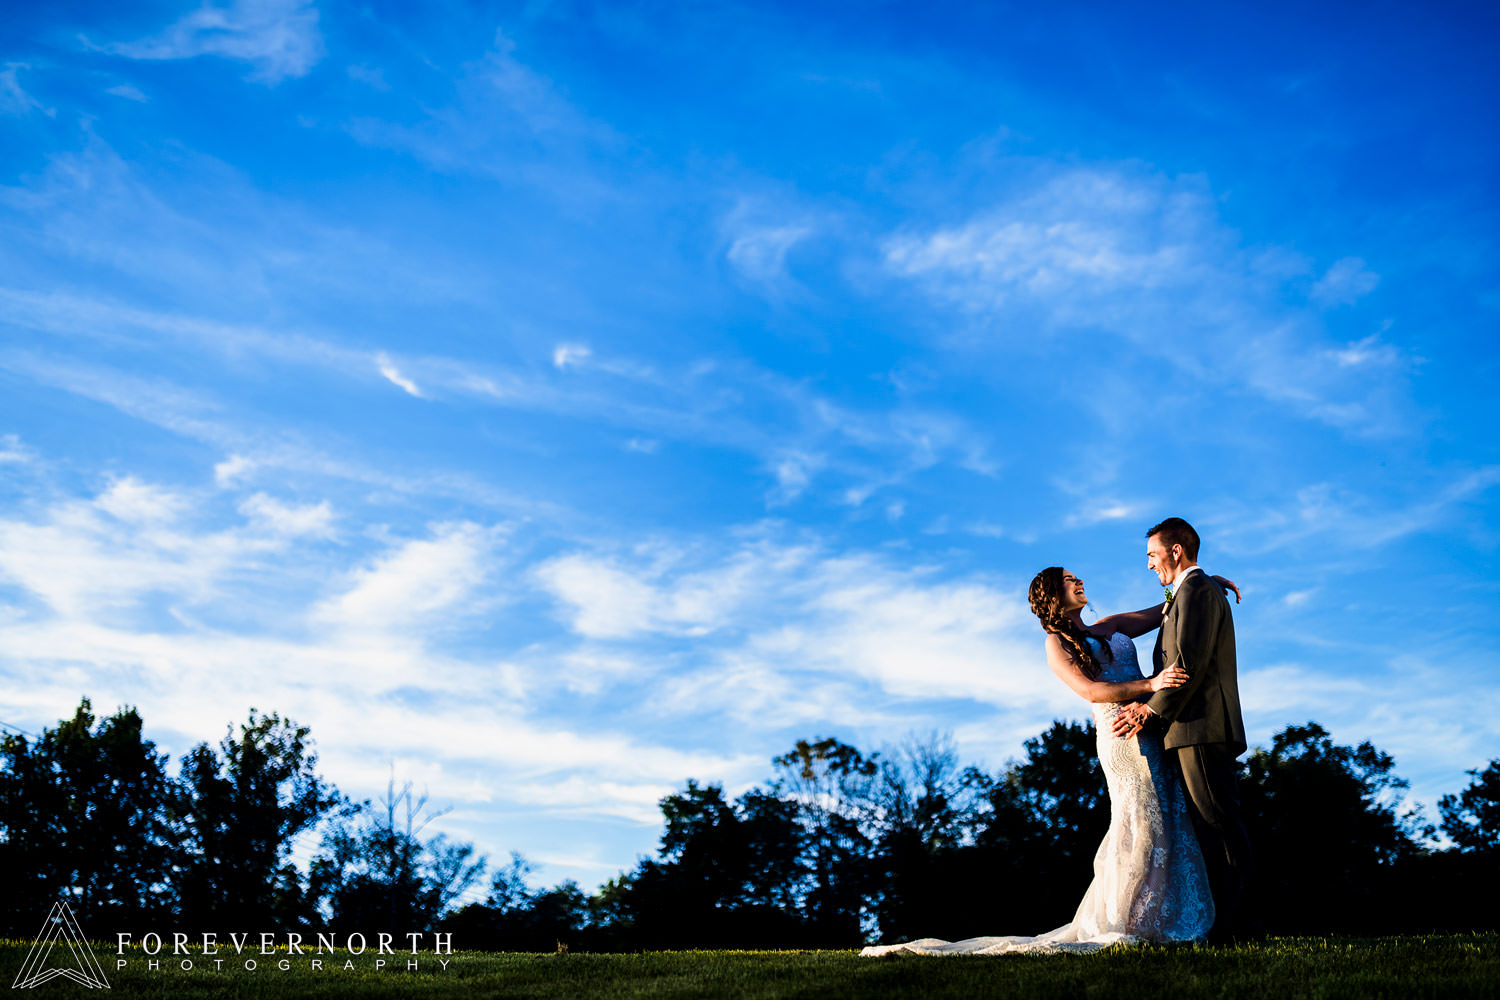 Mendyk-Valenzano-Family-Winery-NJ-Wedding-Photographer-25.JPG